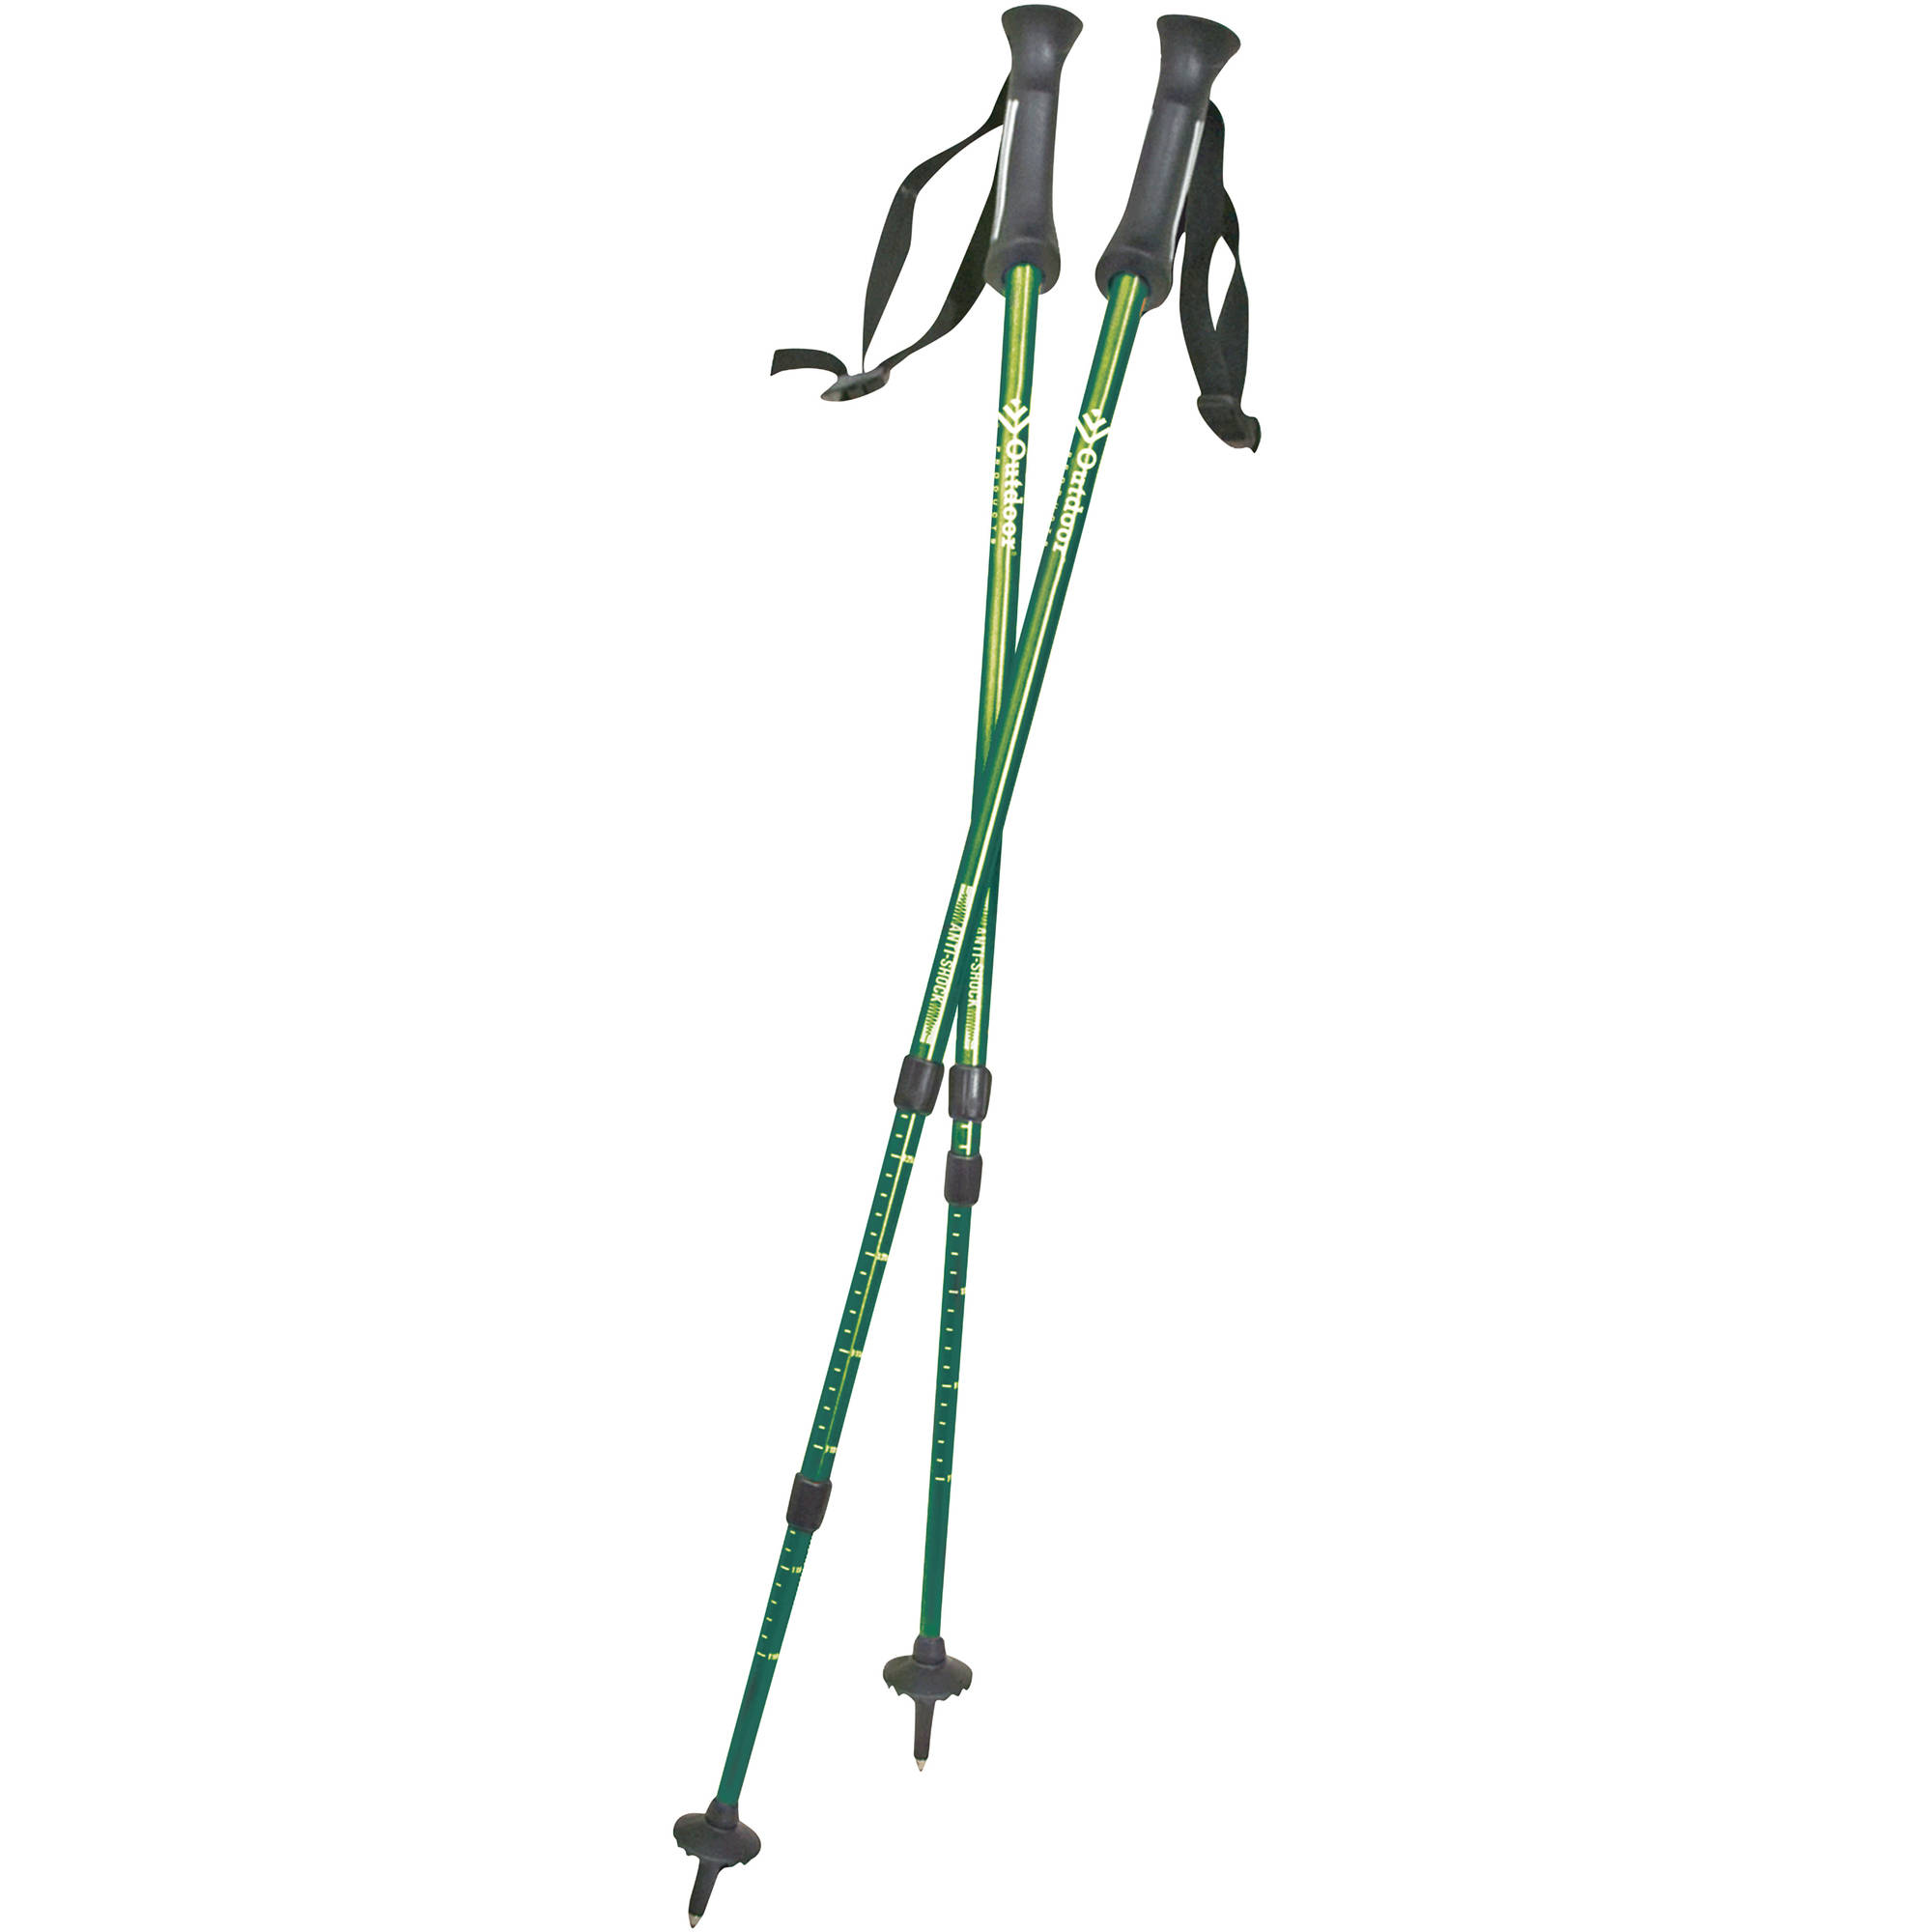 Outdoor Products Apex Trekking Pole Set, Lime by Generic